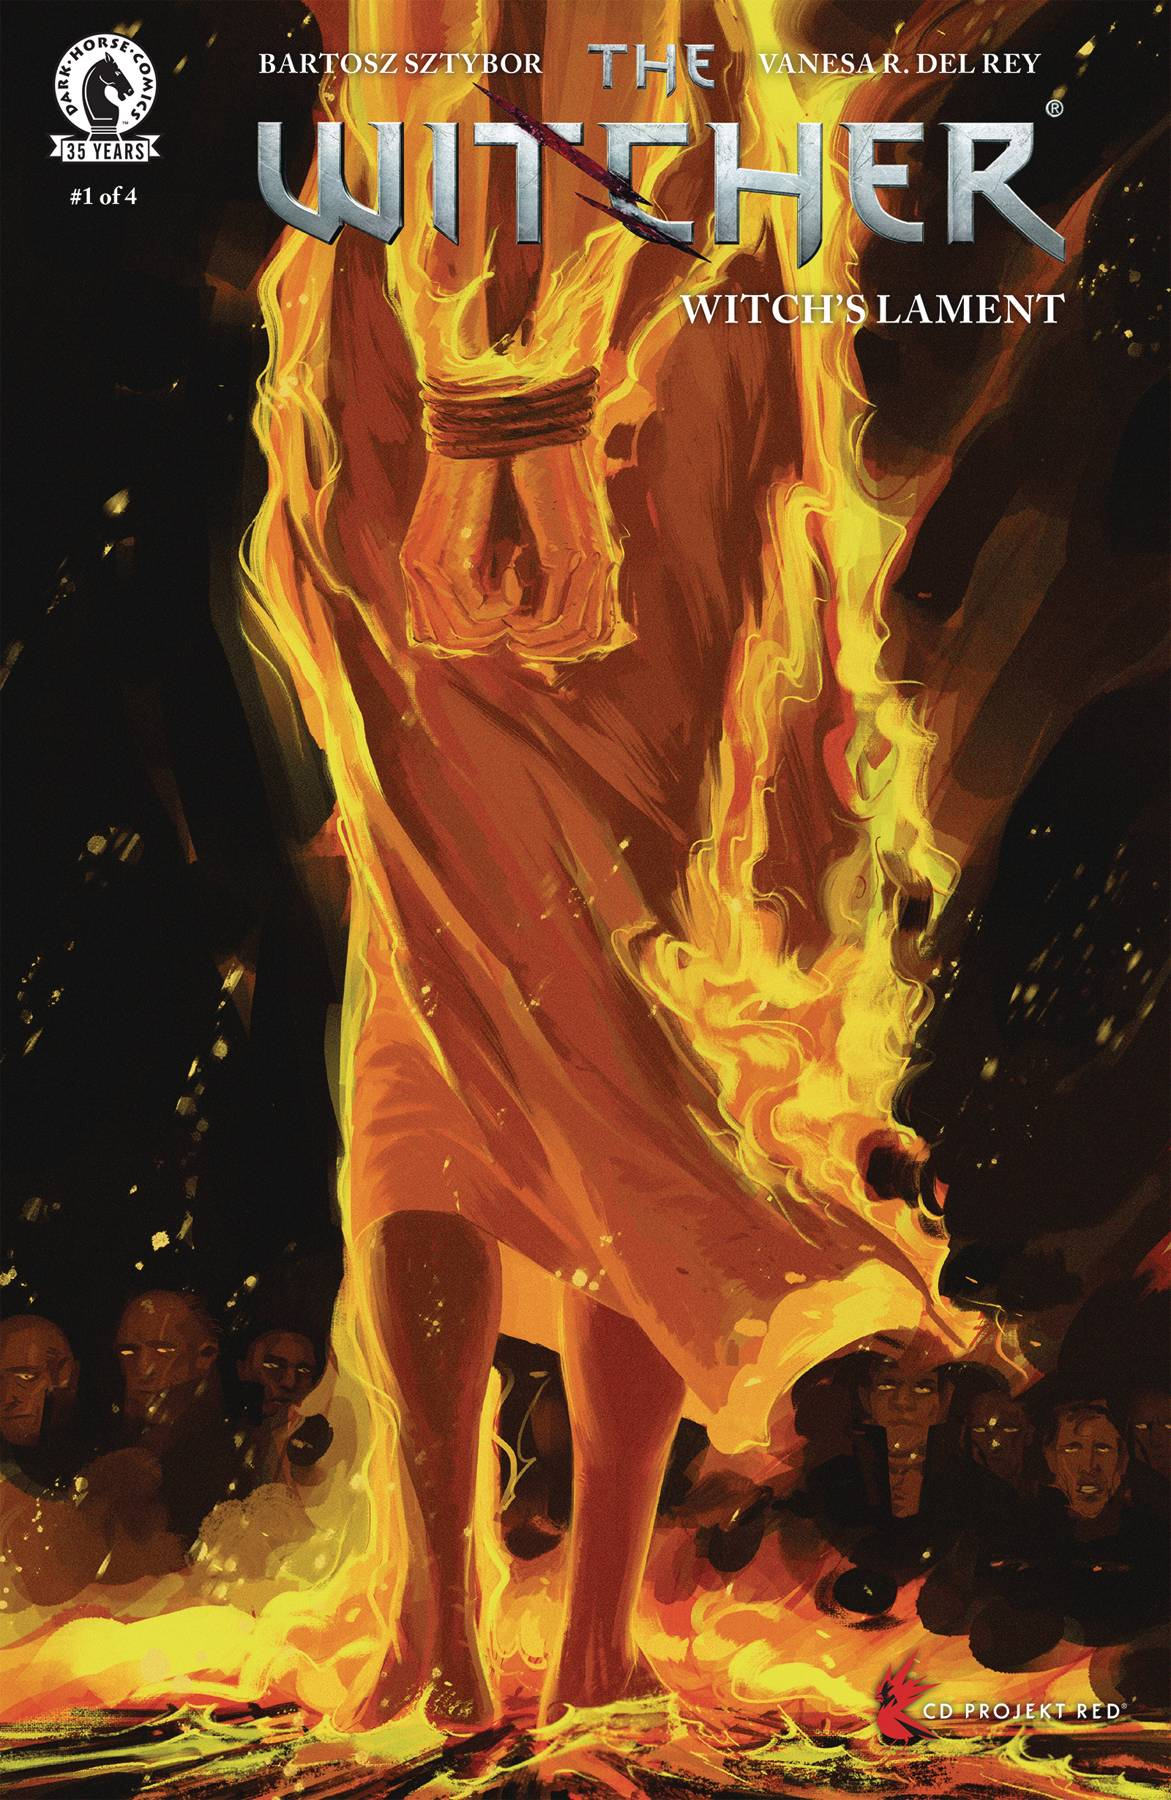 WITCHER WITCHS LAMENT #1 (OF 4) CVR A DEL REY